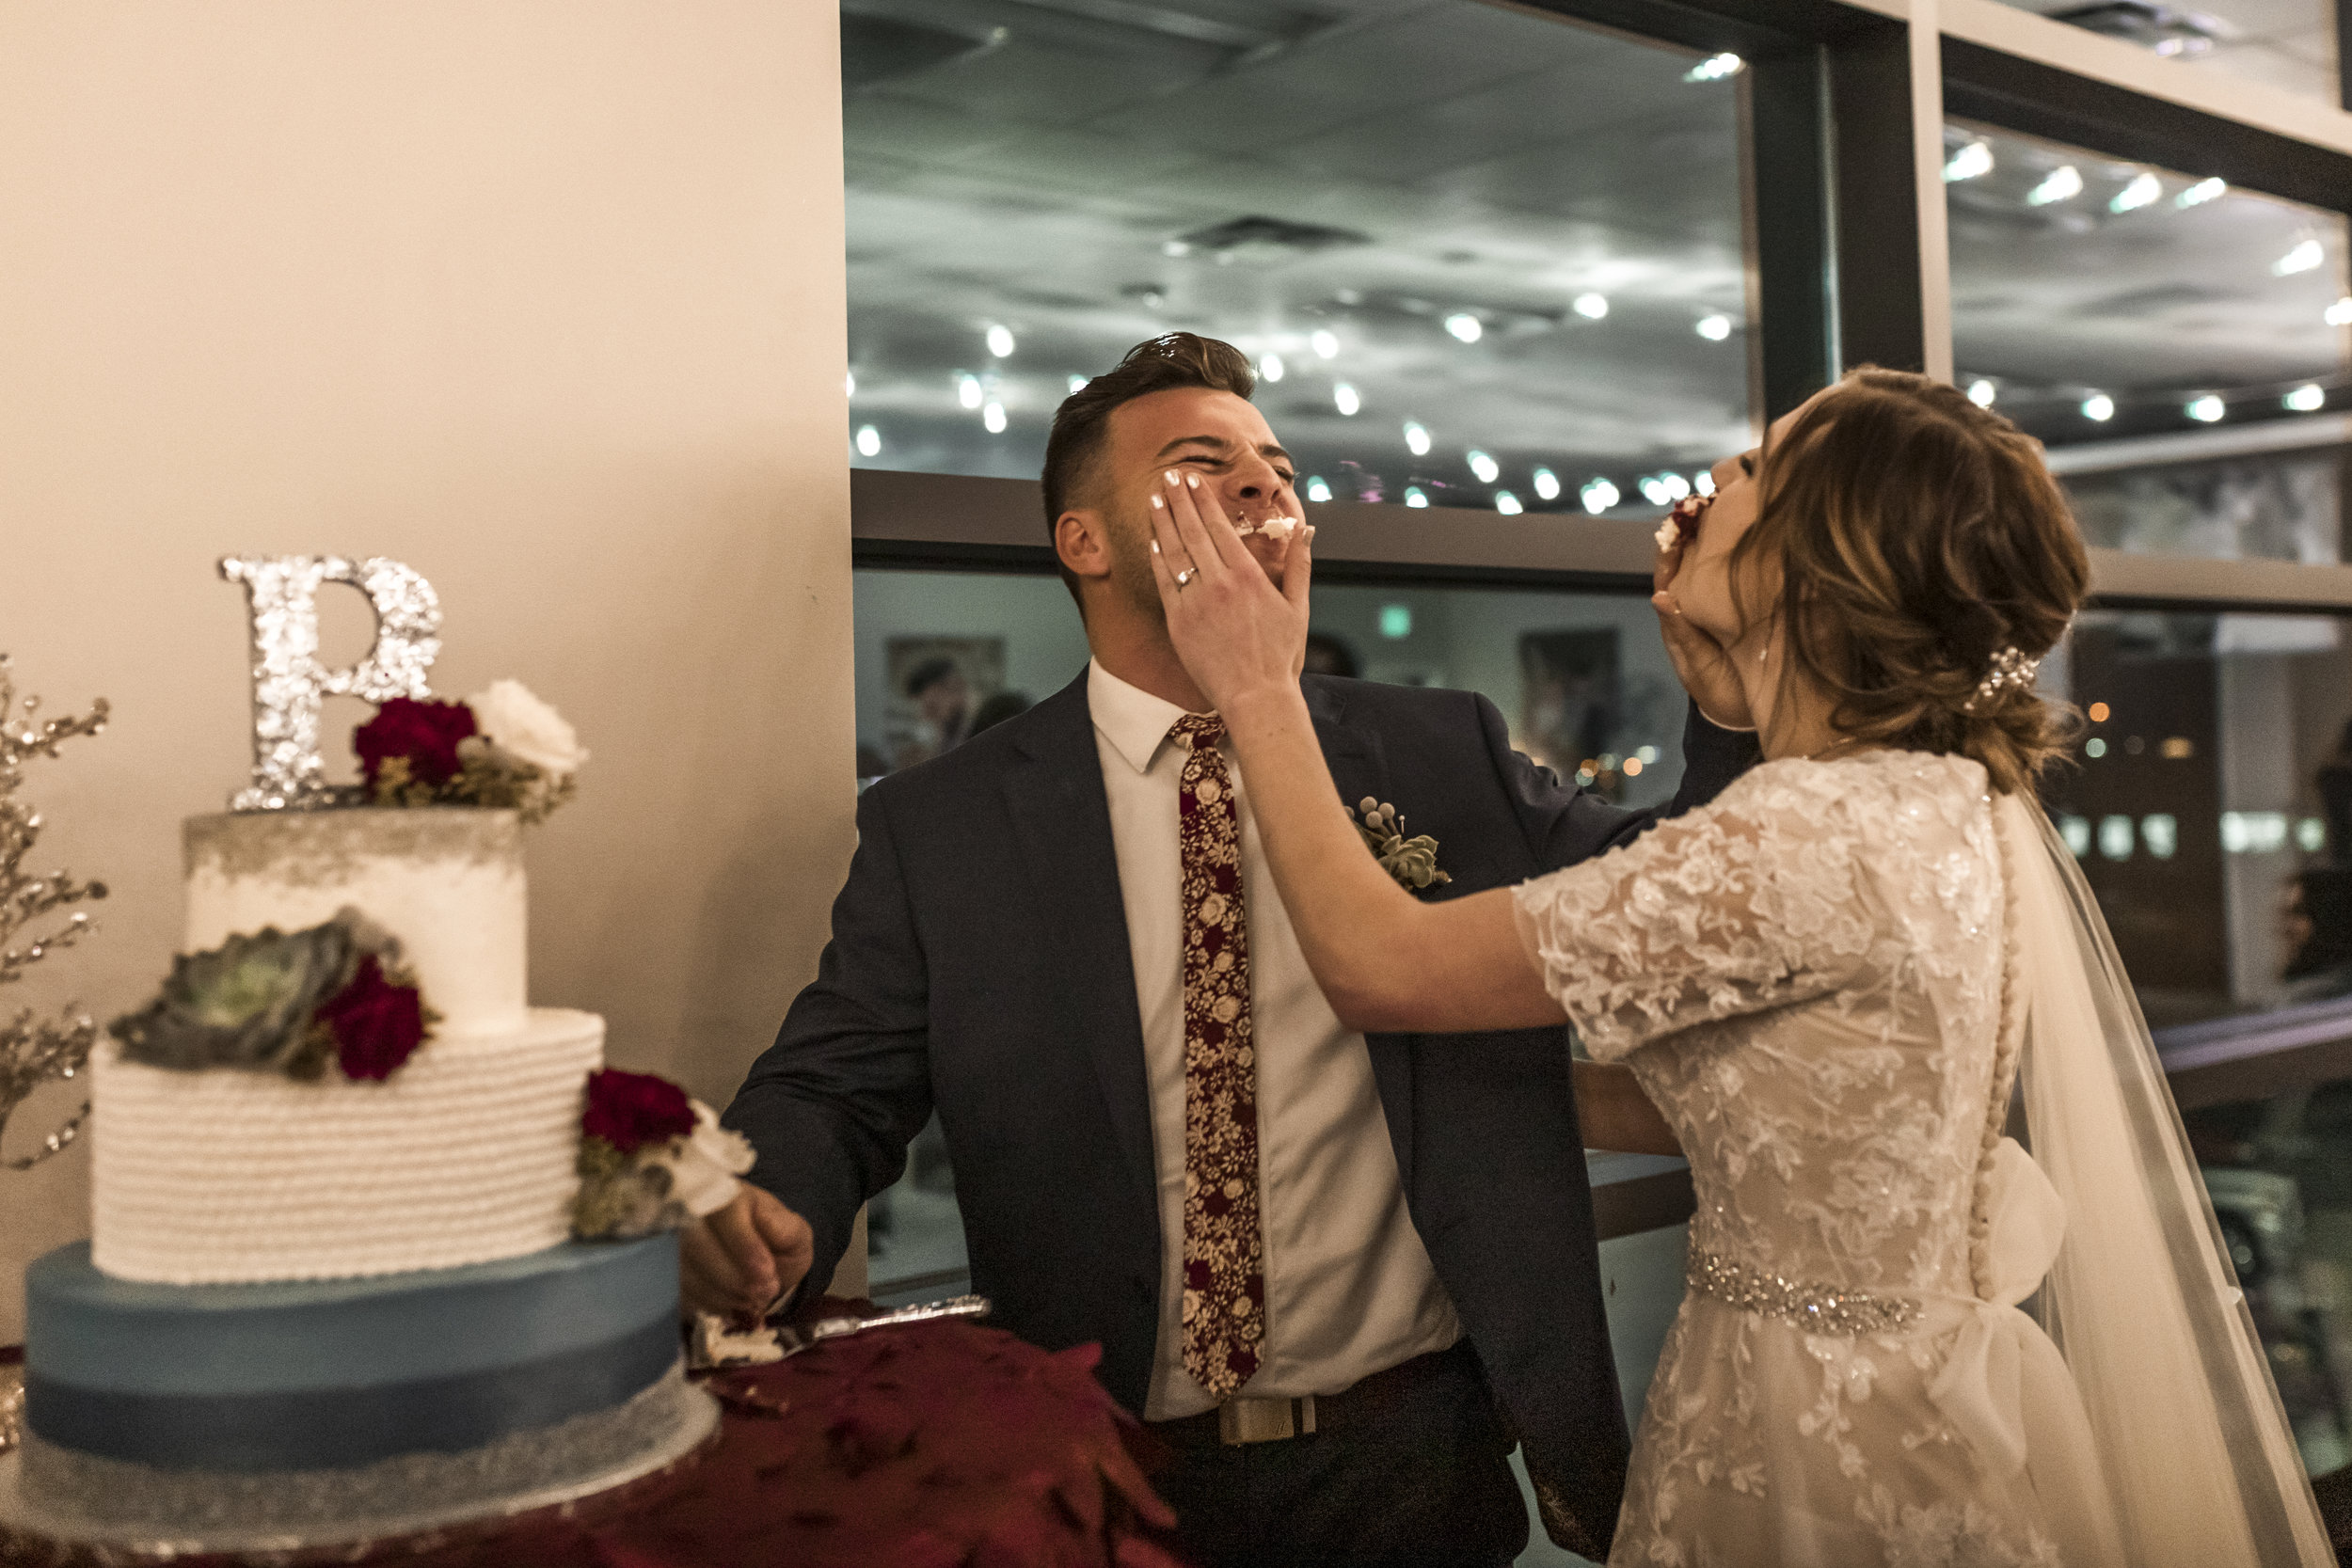 Skyler + Austin | Eleve Event Center Wedding Reception | Bri Bergman Photography 306.JPG